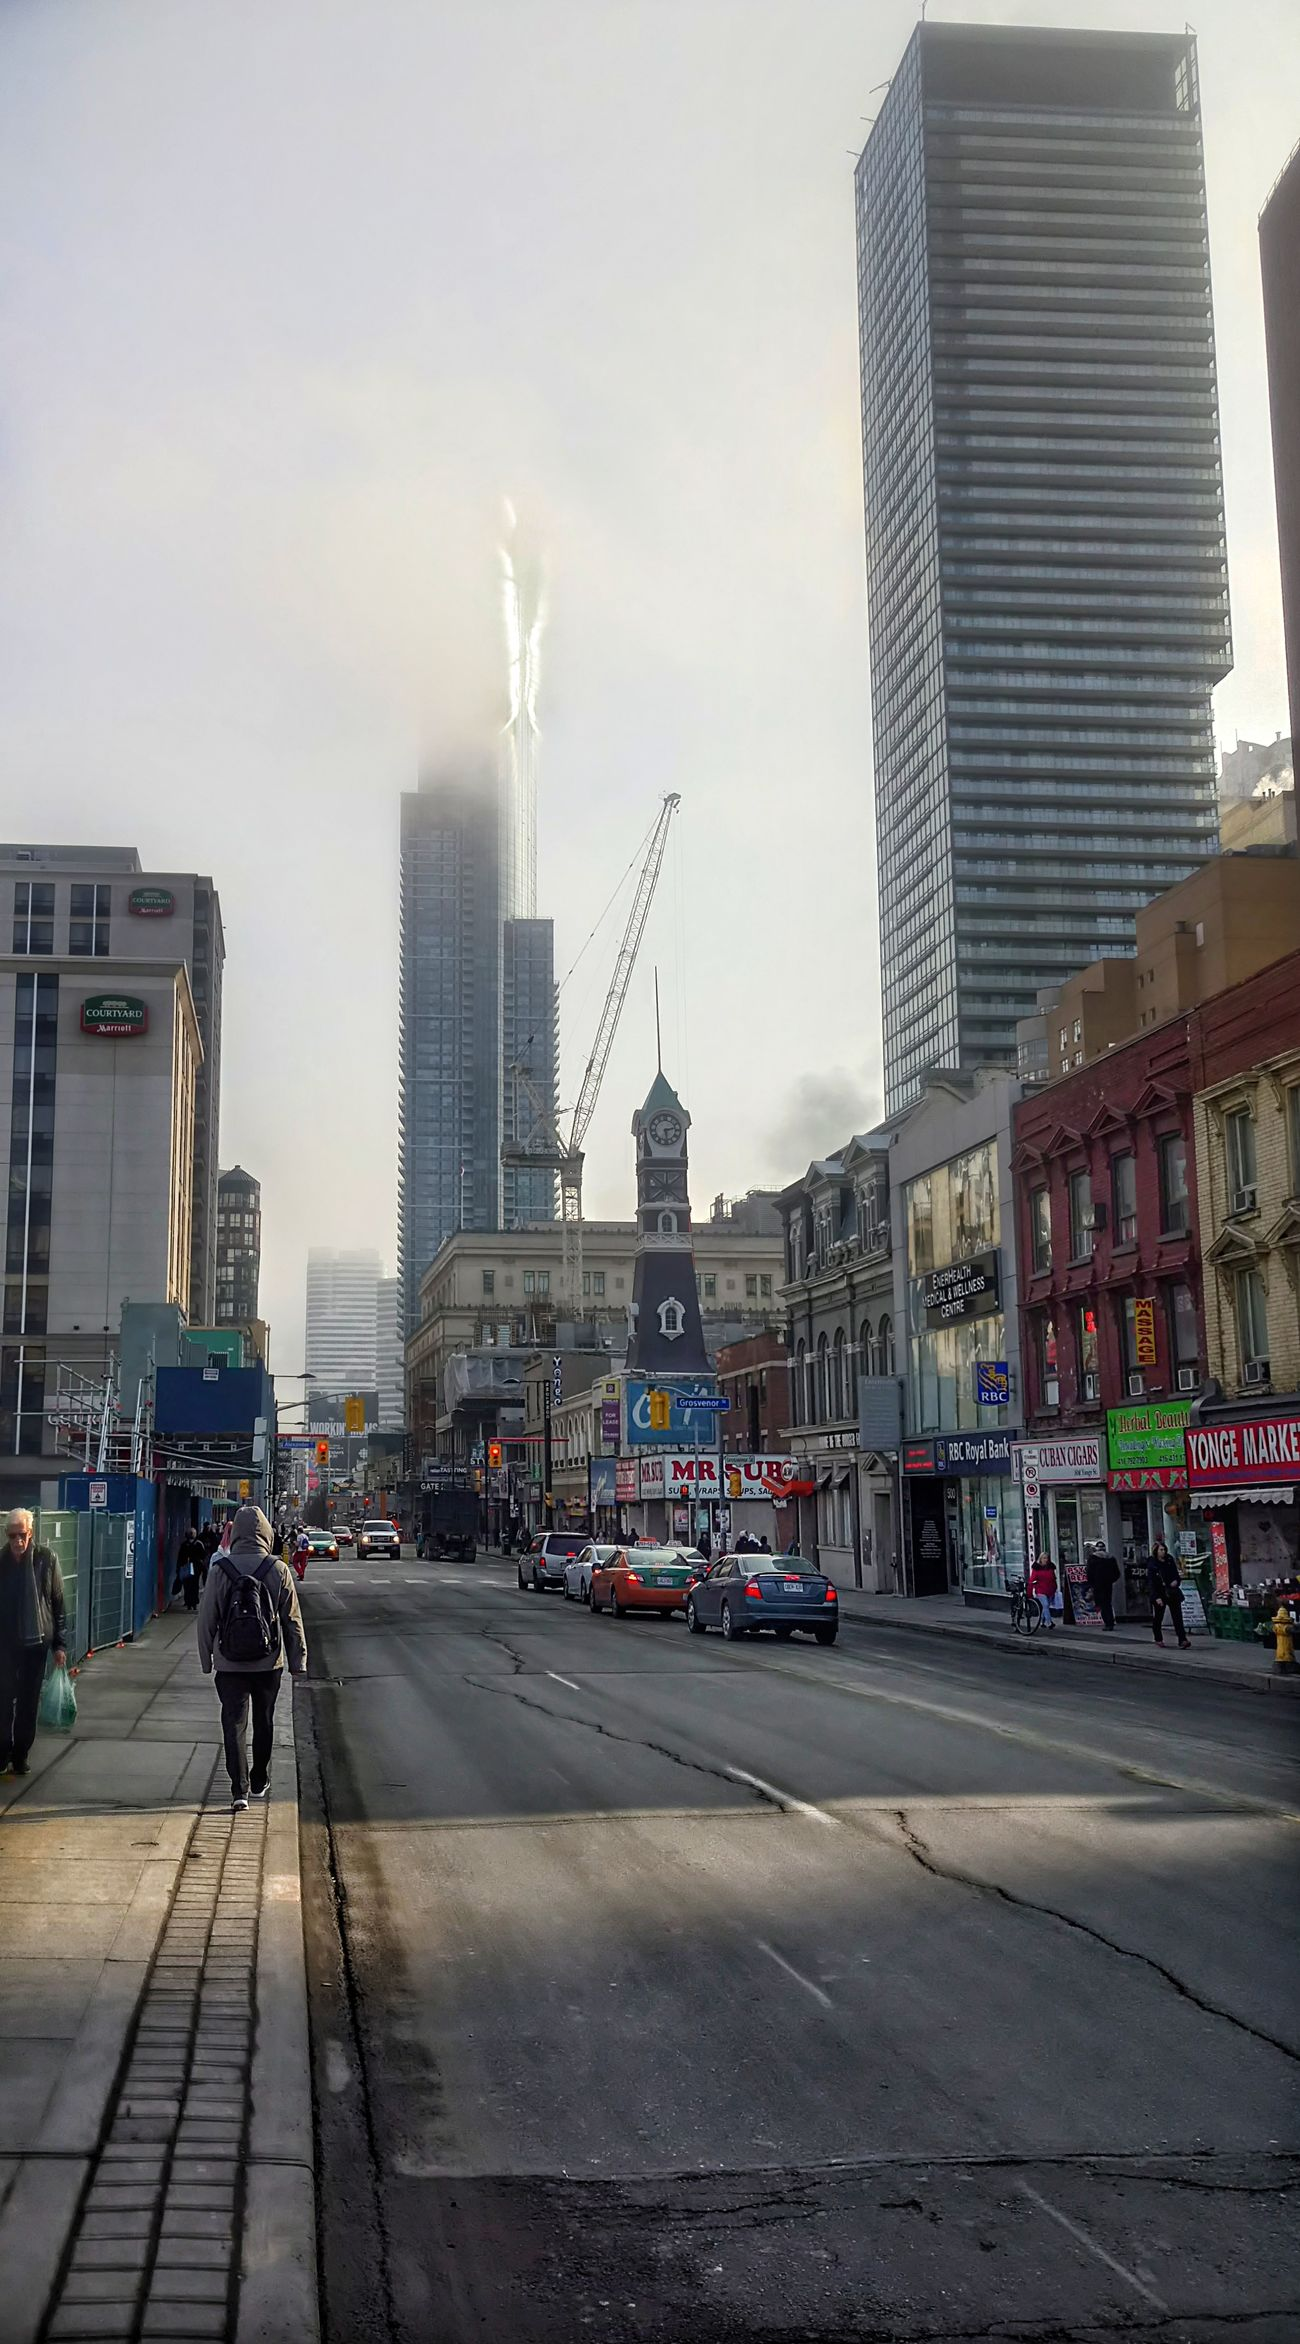 City Street City Life Skyscraper City Street Building Exterior Downtown District Urban Skyline Architecture Streetphotography City Toronto Winter Urban Photography Torontophotographer Cold Temperature Fog Mist